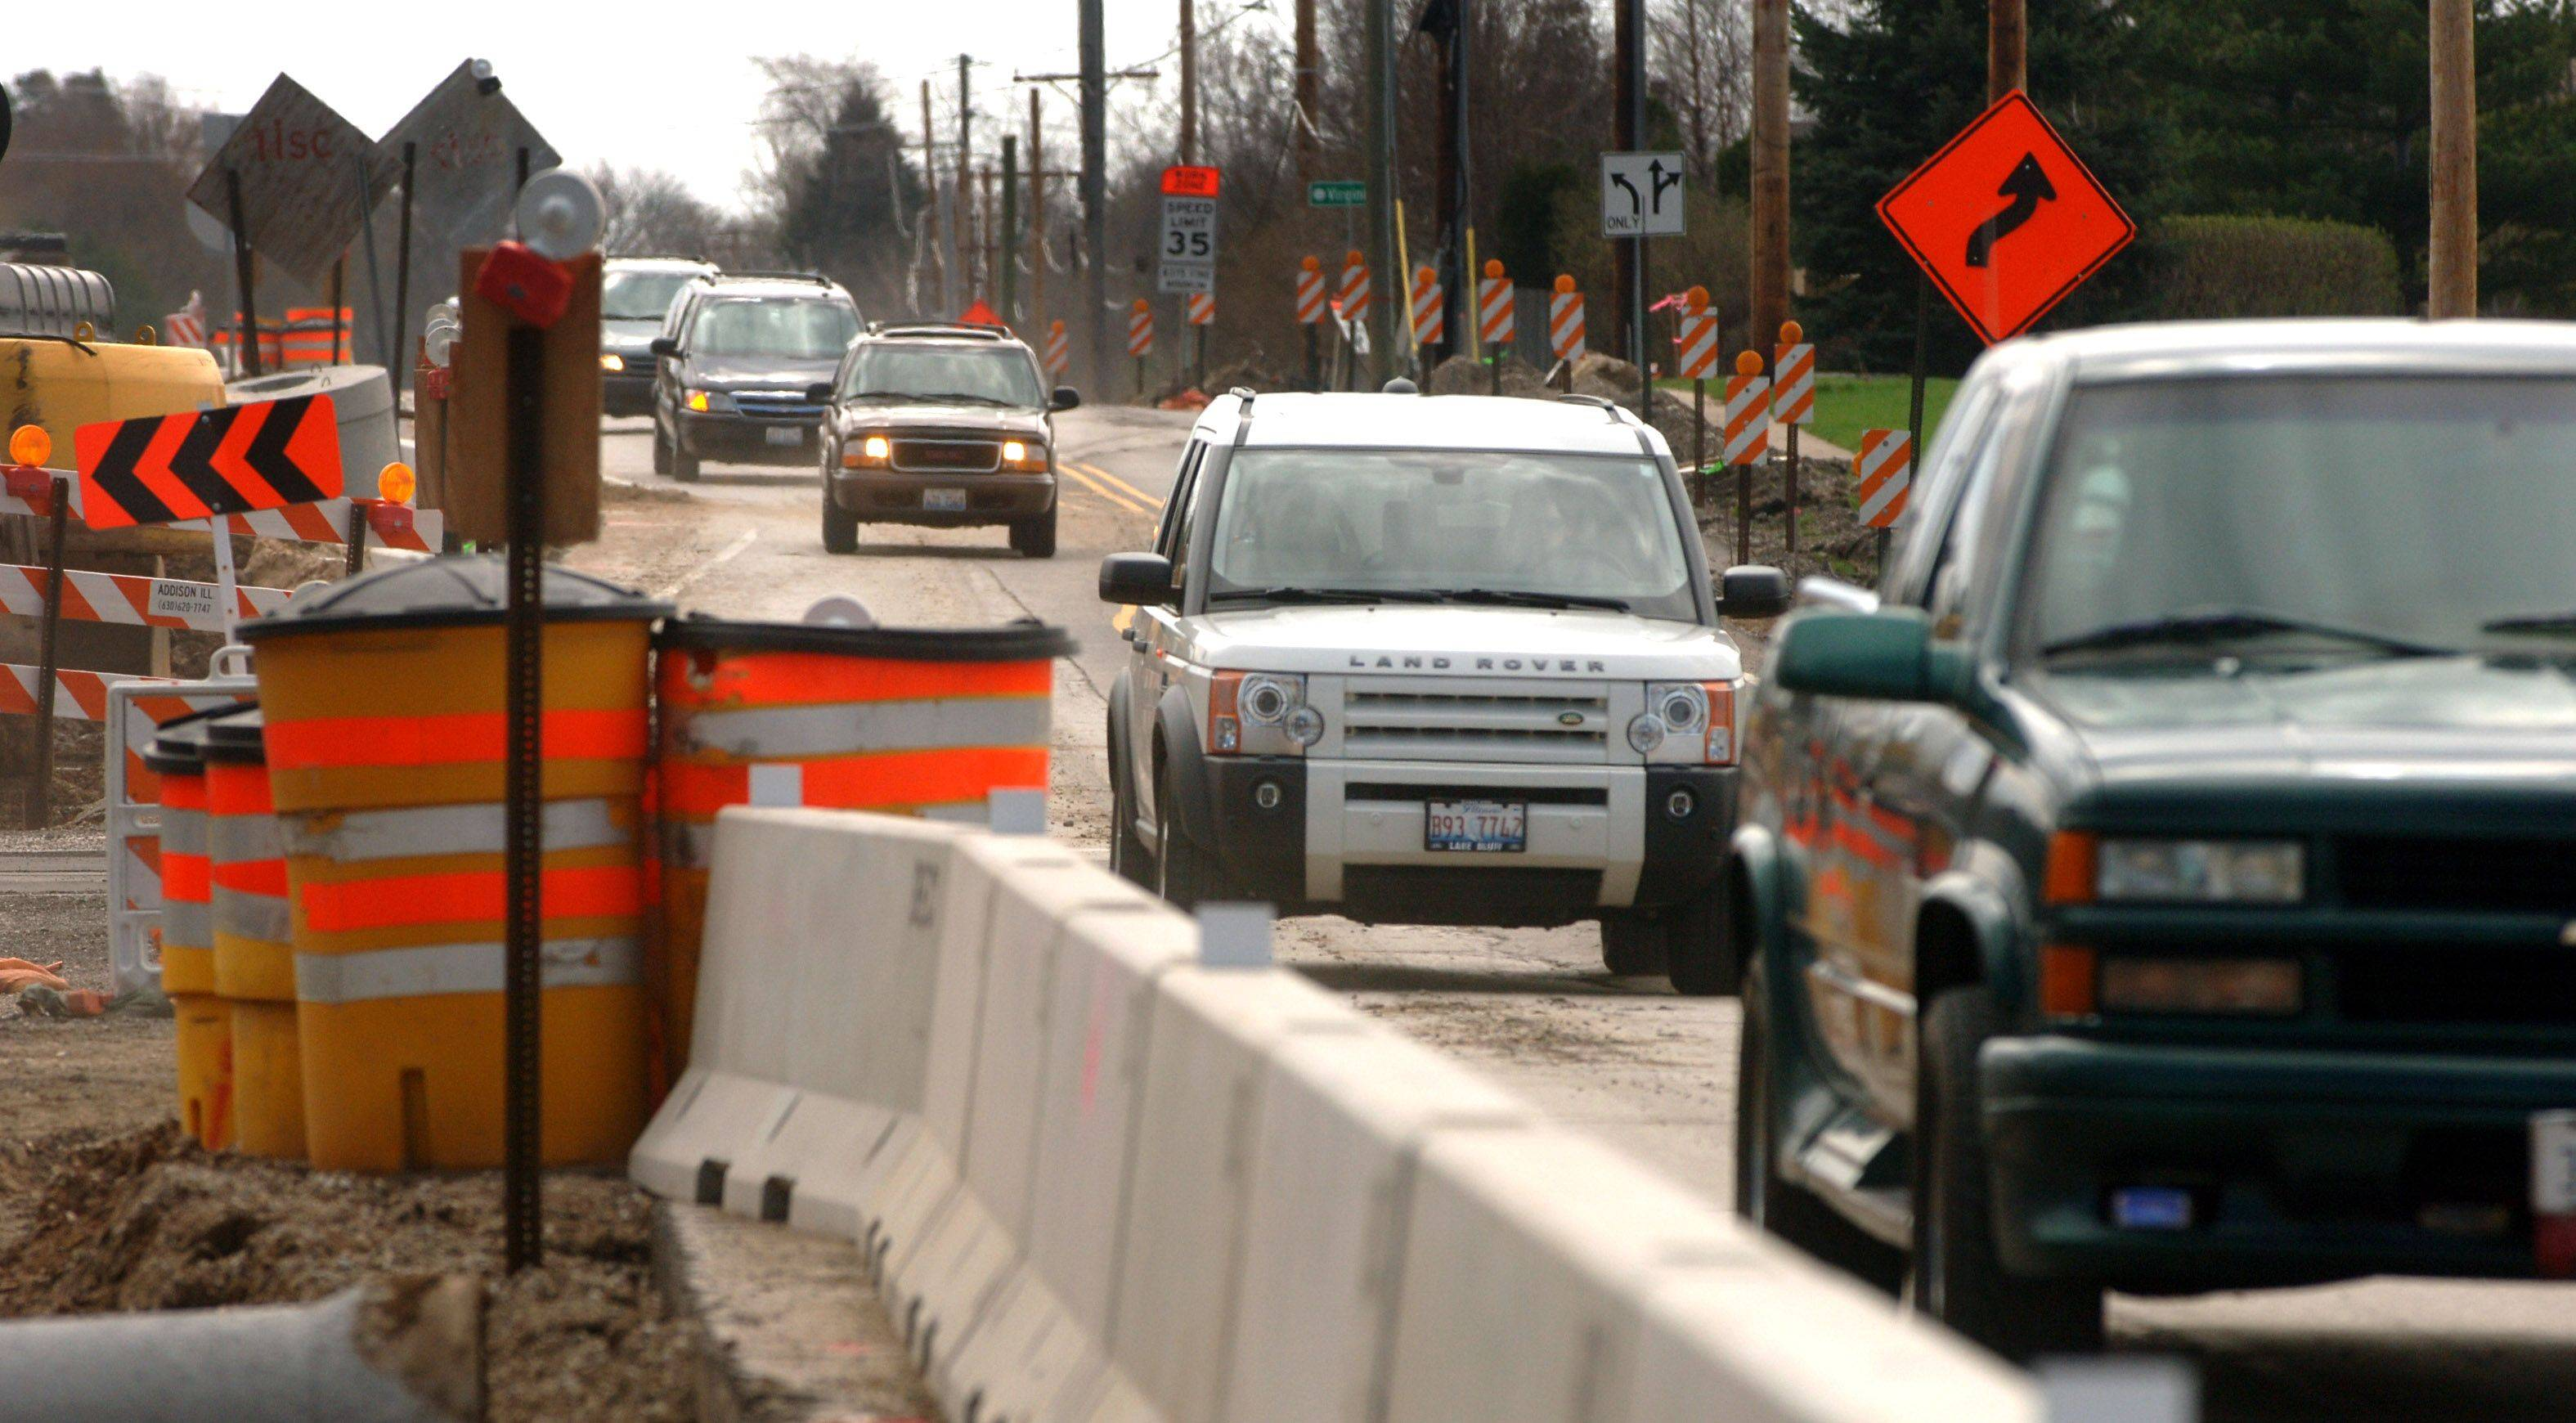 Libertyville residents will be asked to approve a $20 million loan for road repairs when they vote March 20.